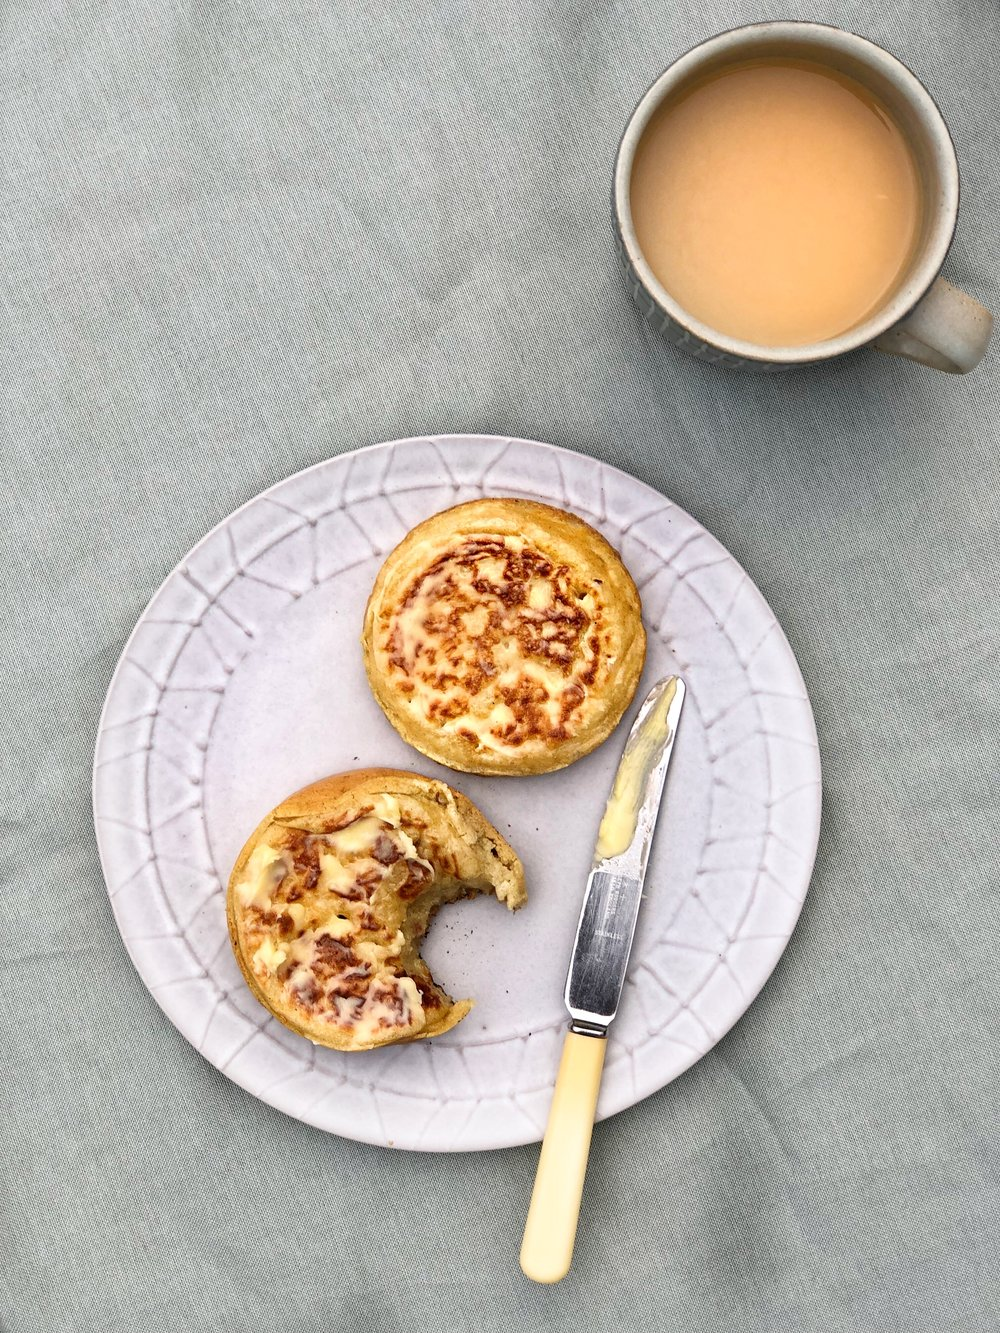 How to make crumpets - Margie Nomura - DESERT ISLAND DISHES